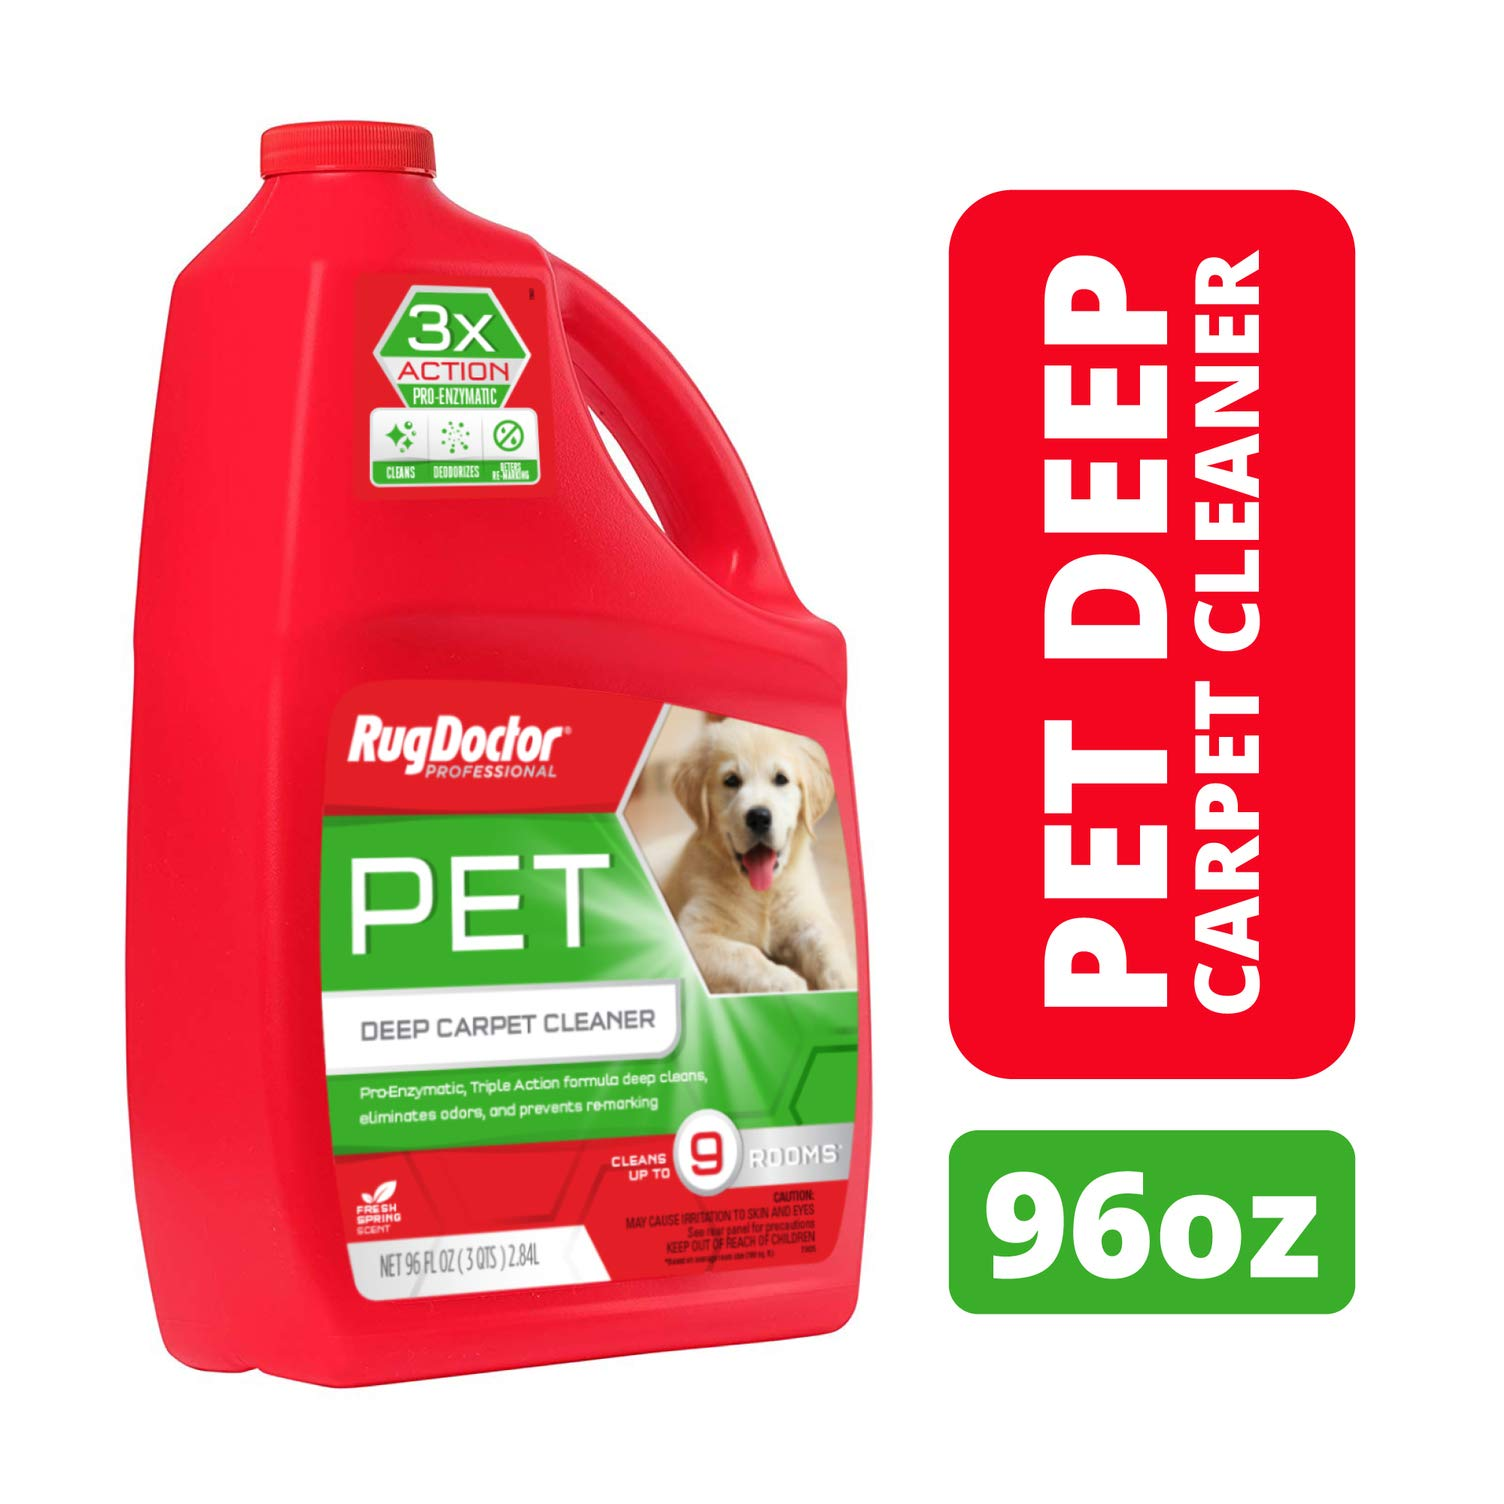 Rug Doctor Triple Action Pet Deep Carpet Cleaner; Permanently Removes Tough Pet Stains and Odors, Professional-Grade, Protects Soft Surfaces from Pet Accidents, Cleans 9 Rooms, CRI-Certified, 96 Oz. by Rug Doctor